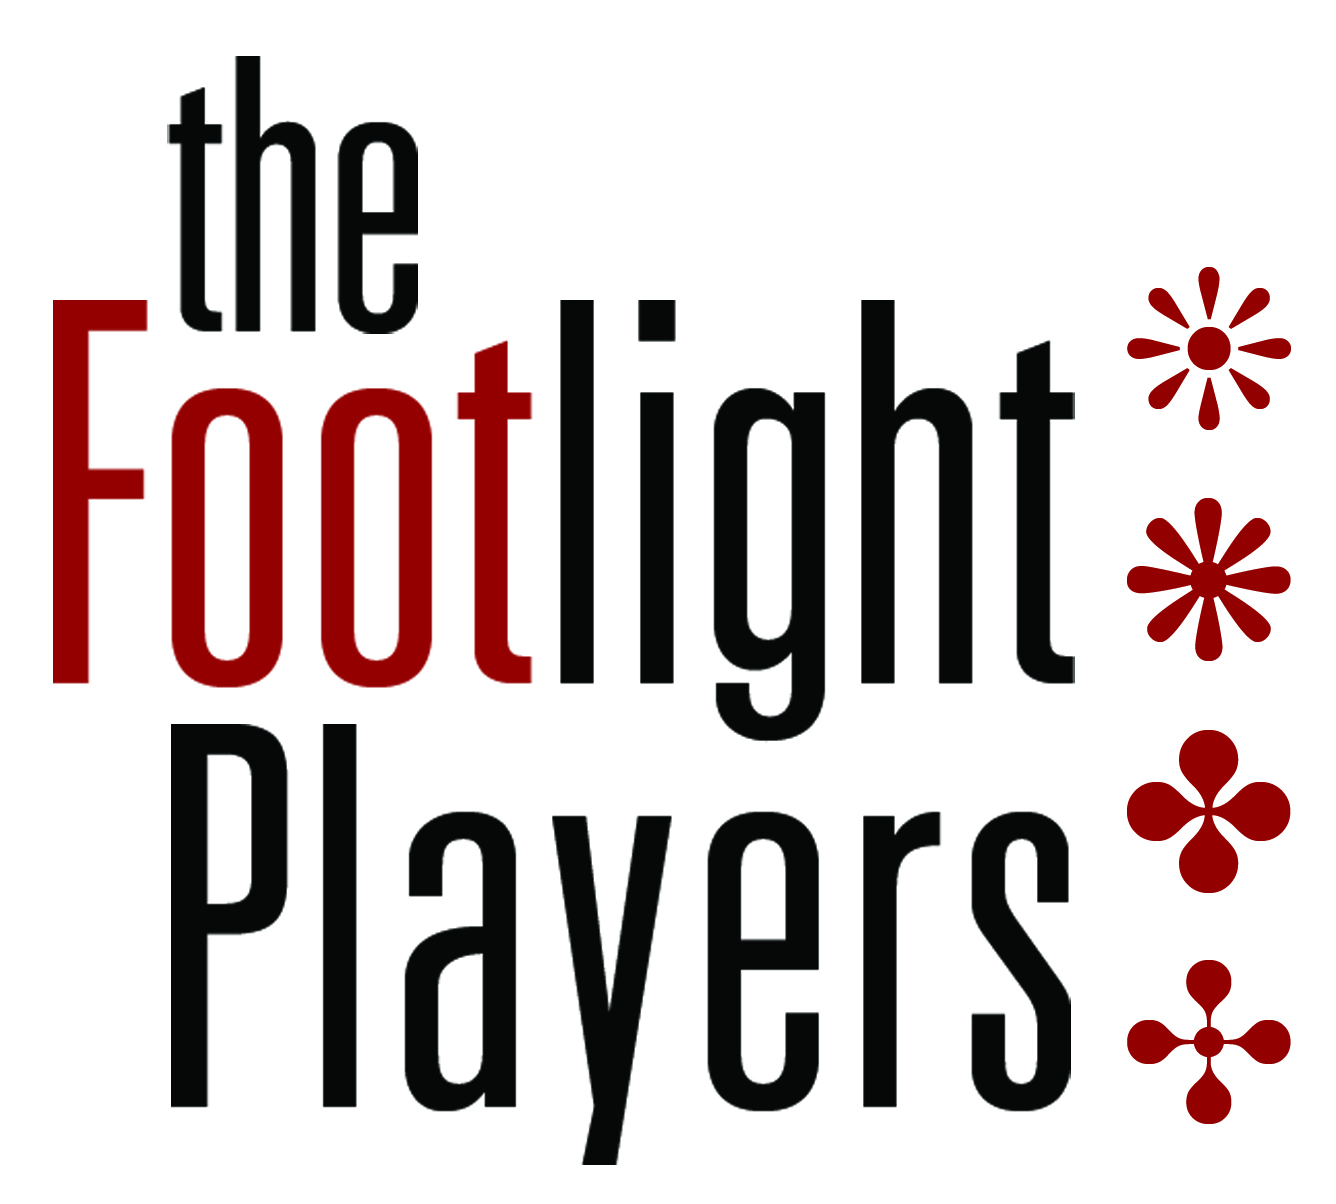 Footlight Players